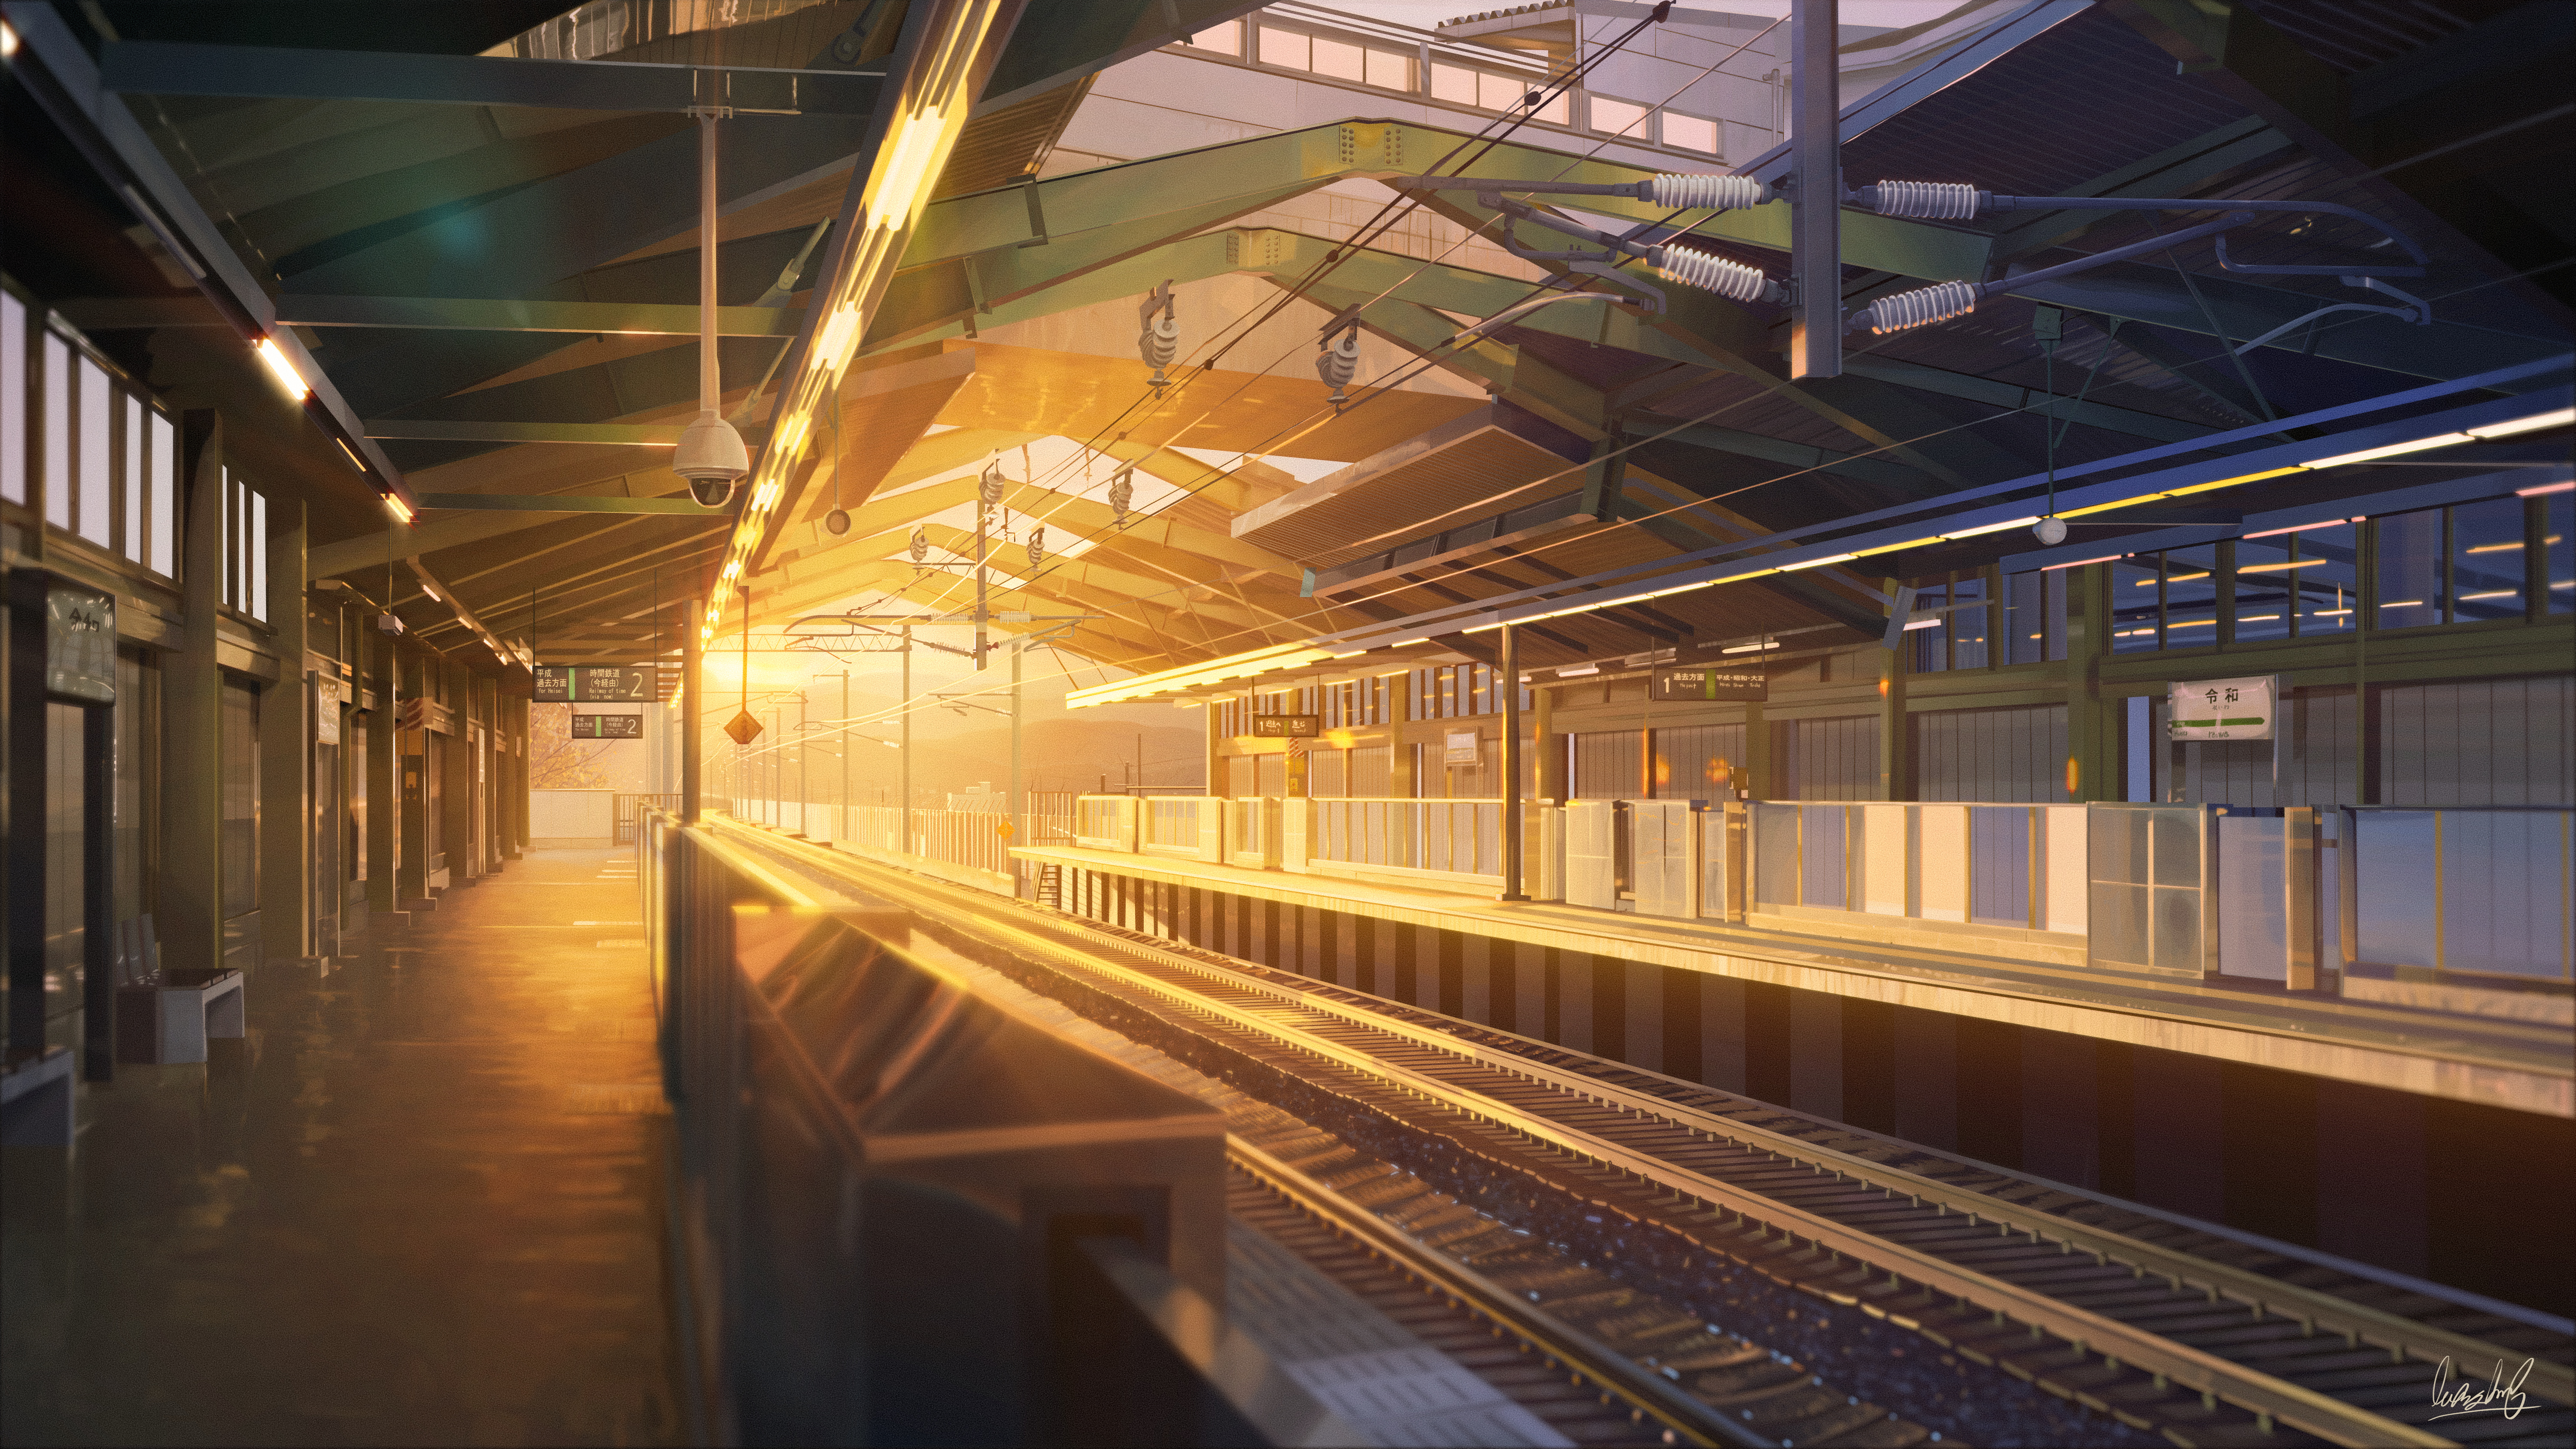 Train Station Anime 5k Hd Anime 4k Wallpapers Images